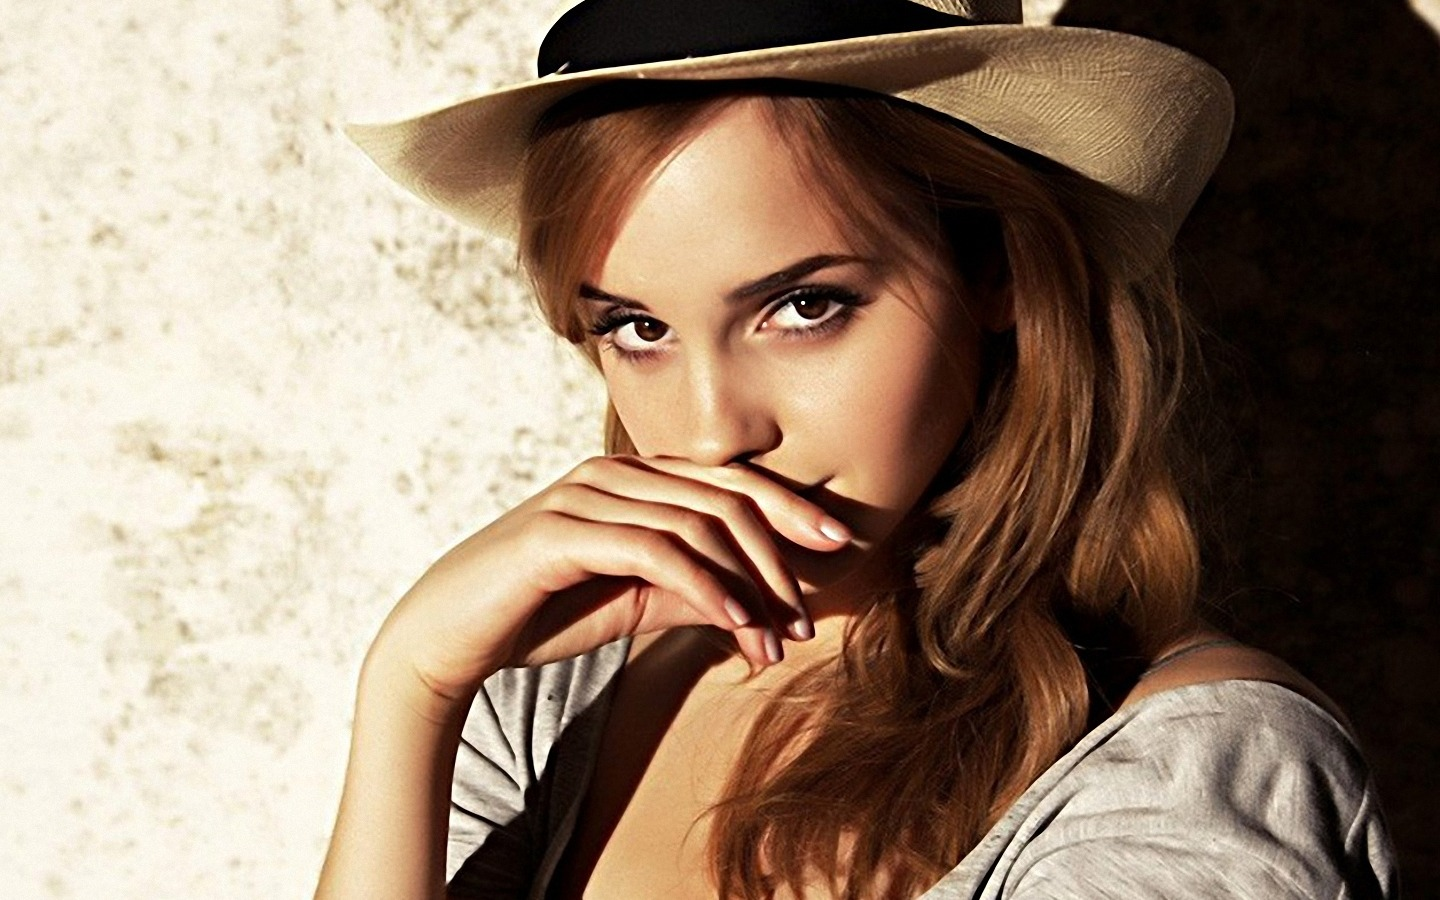 1440x900 emma watson white hat desktop pc and mac wallpaper